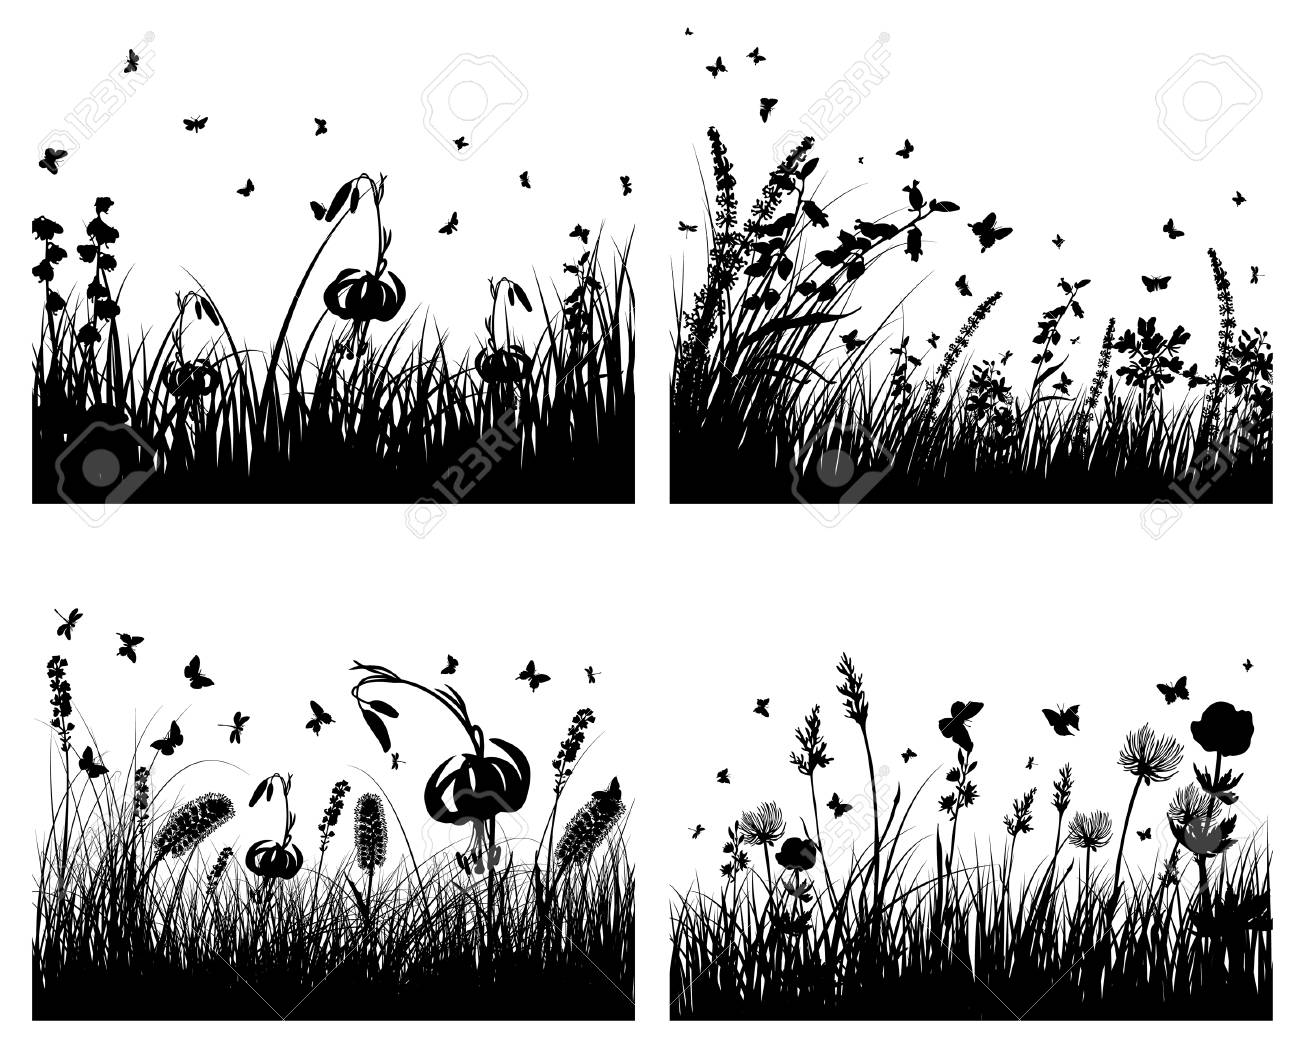 Vector grass silhouettes background with reflection in water. All objects are separated. Stock Vector - 5603194